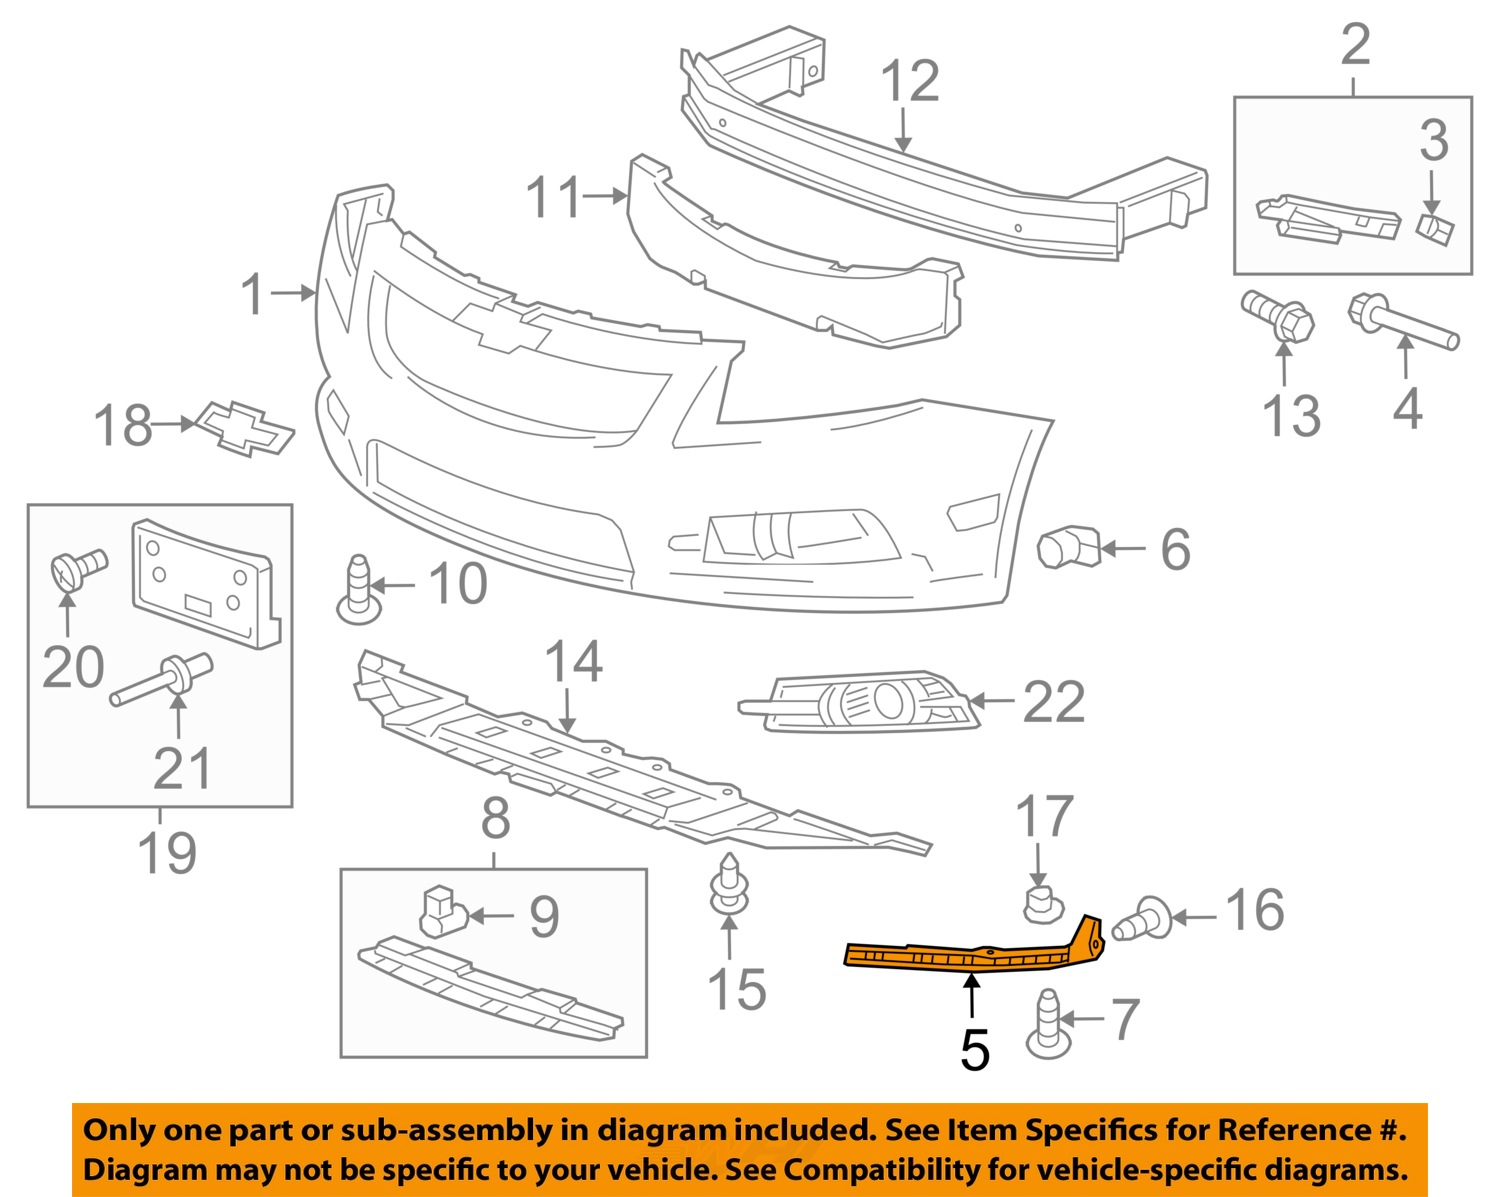 Chevrolet Gm Oem Cruze Front Bumper Grille Grill